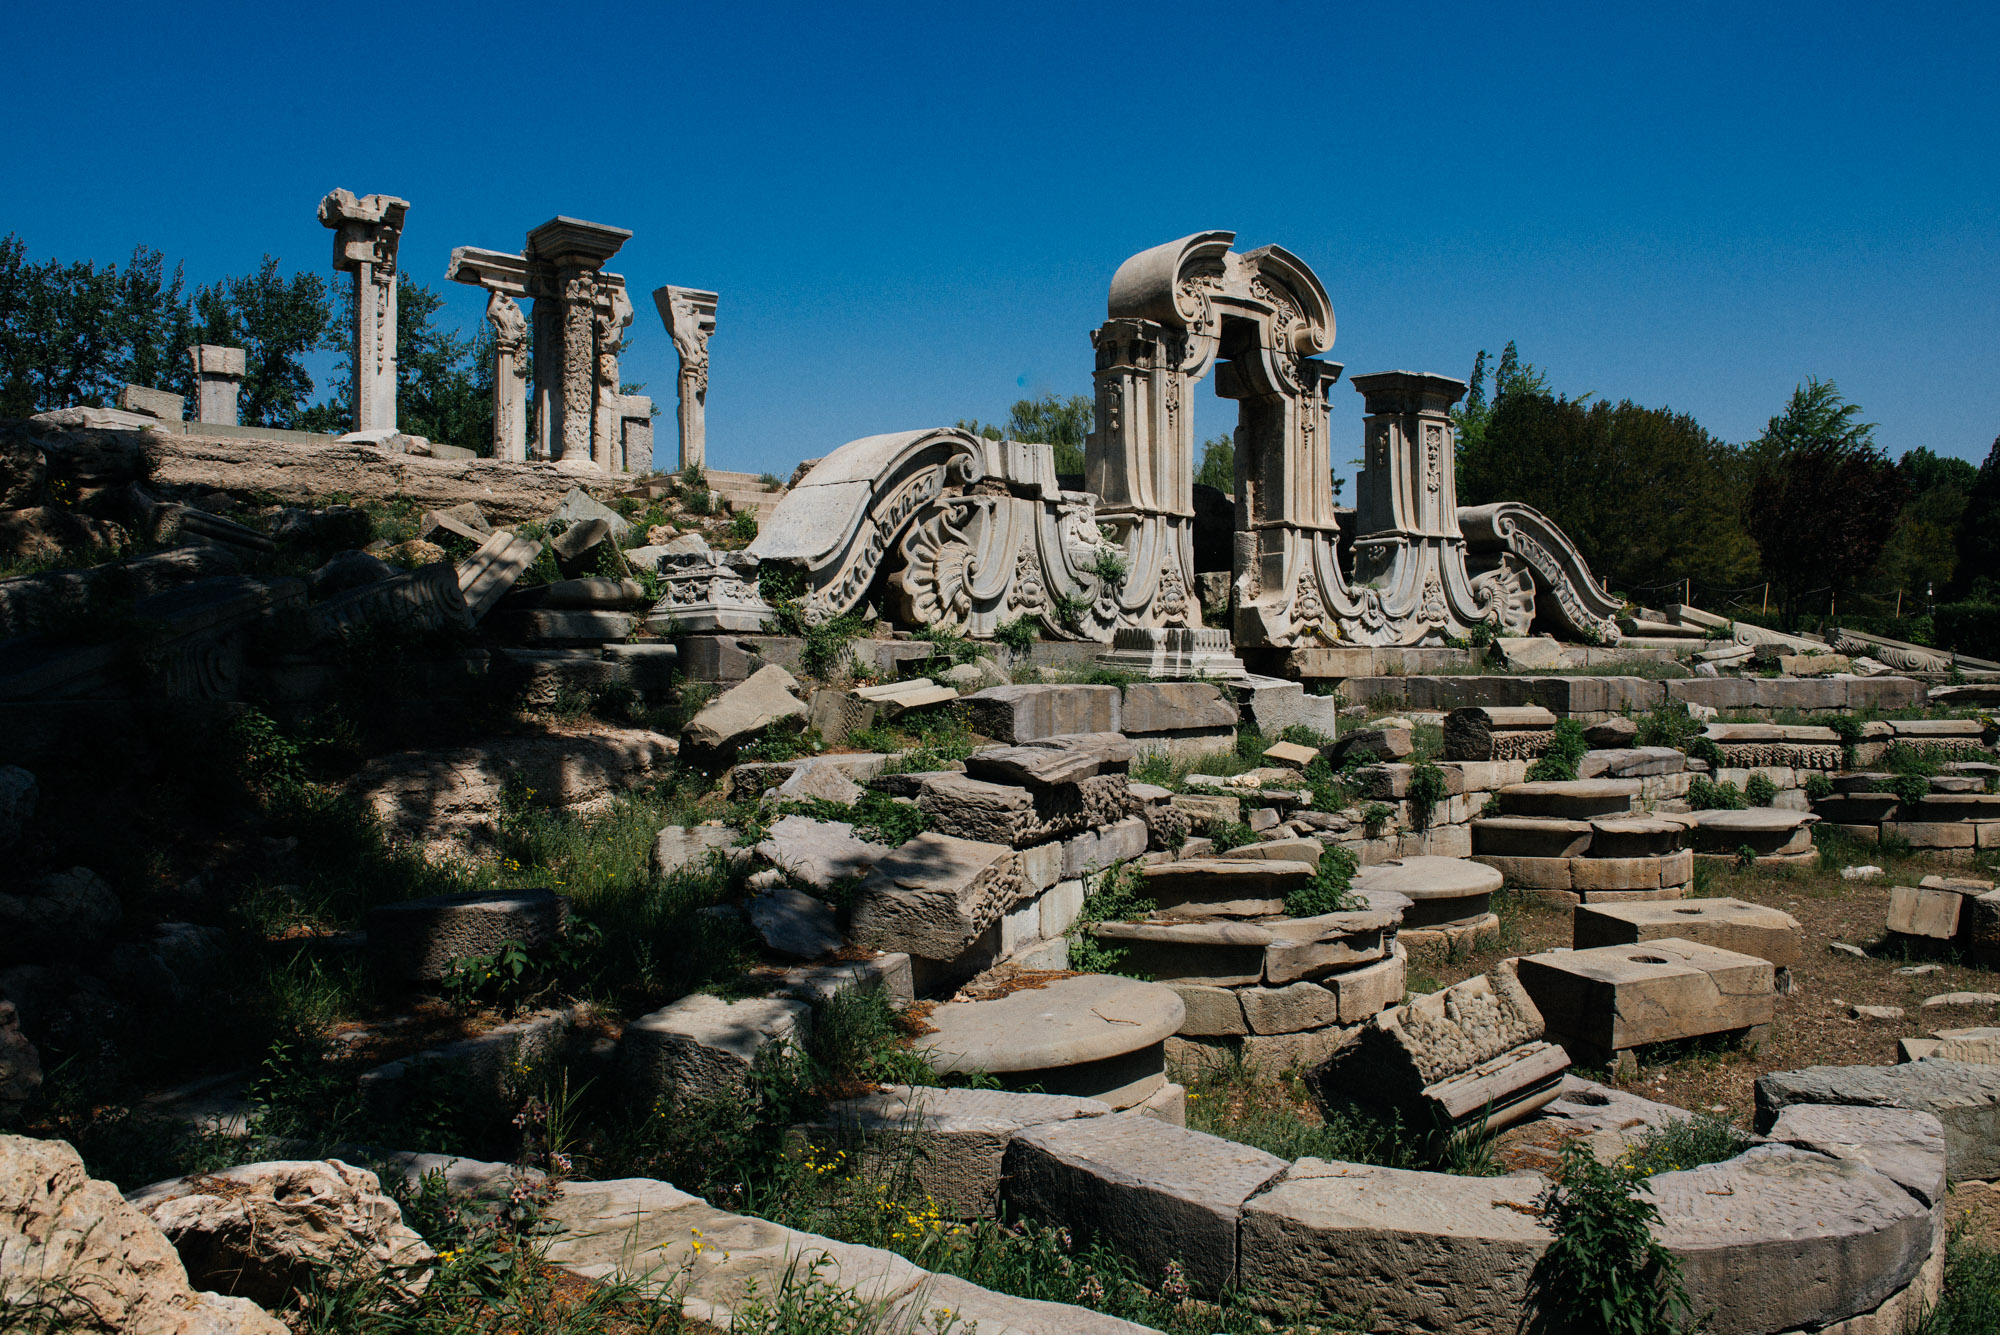 """The so-called """"European-style palace"""" was an exotic building with its columns and round shapes, very different from the traditional local architecture. These are the most famous ruins of this site."""